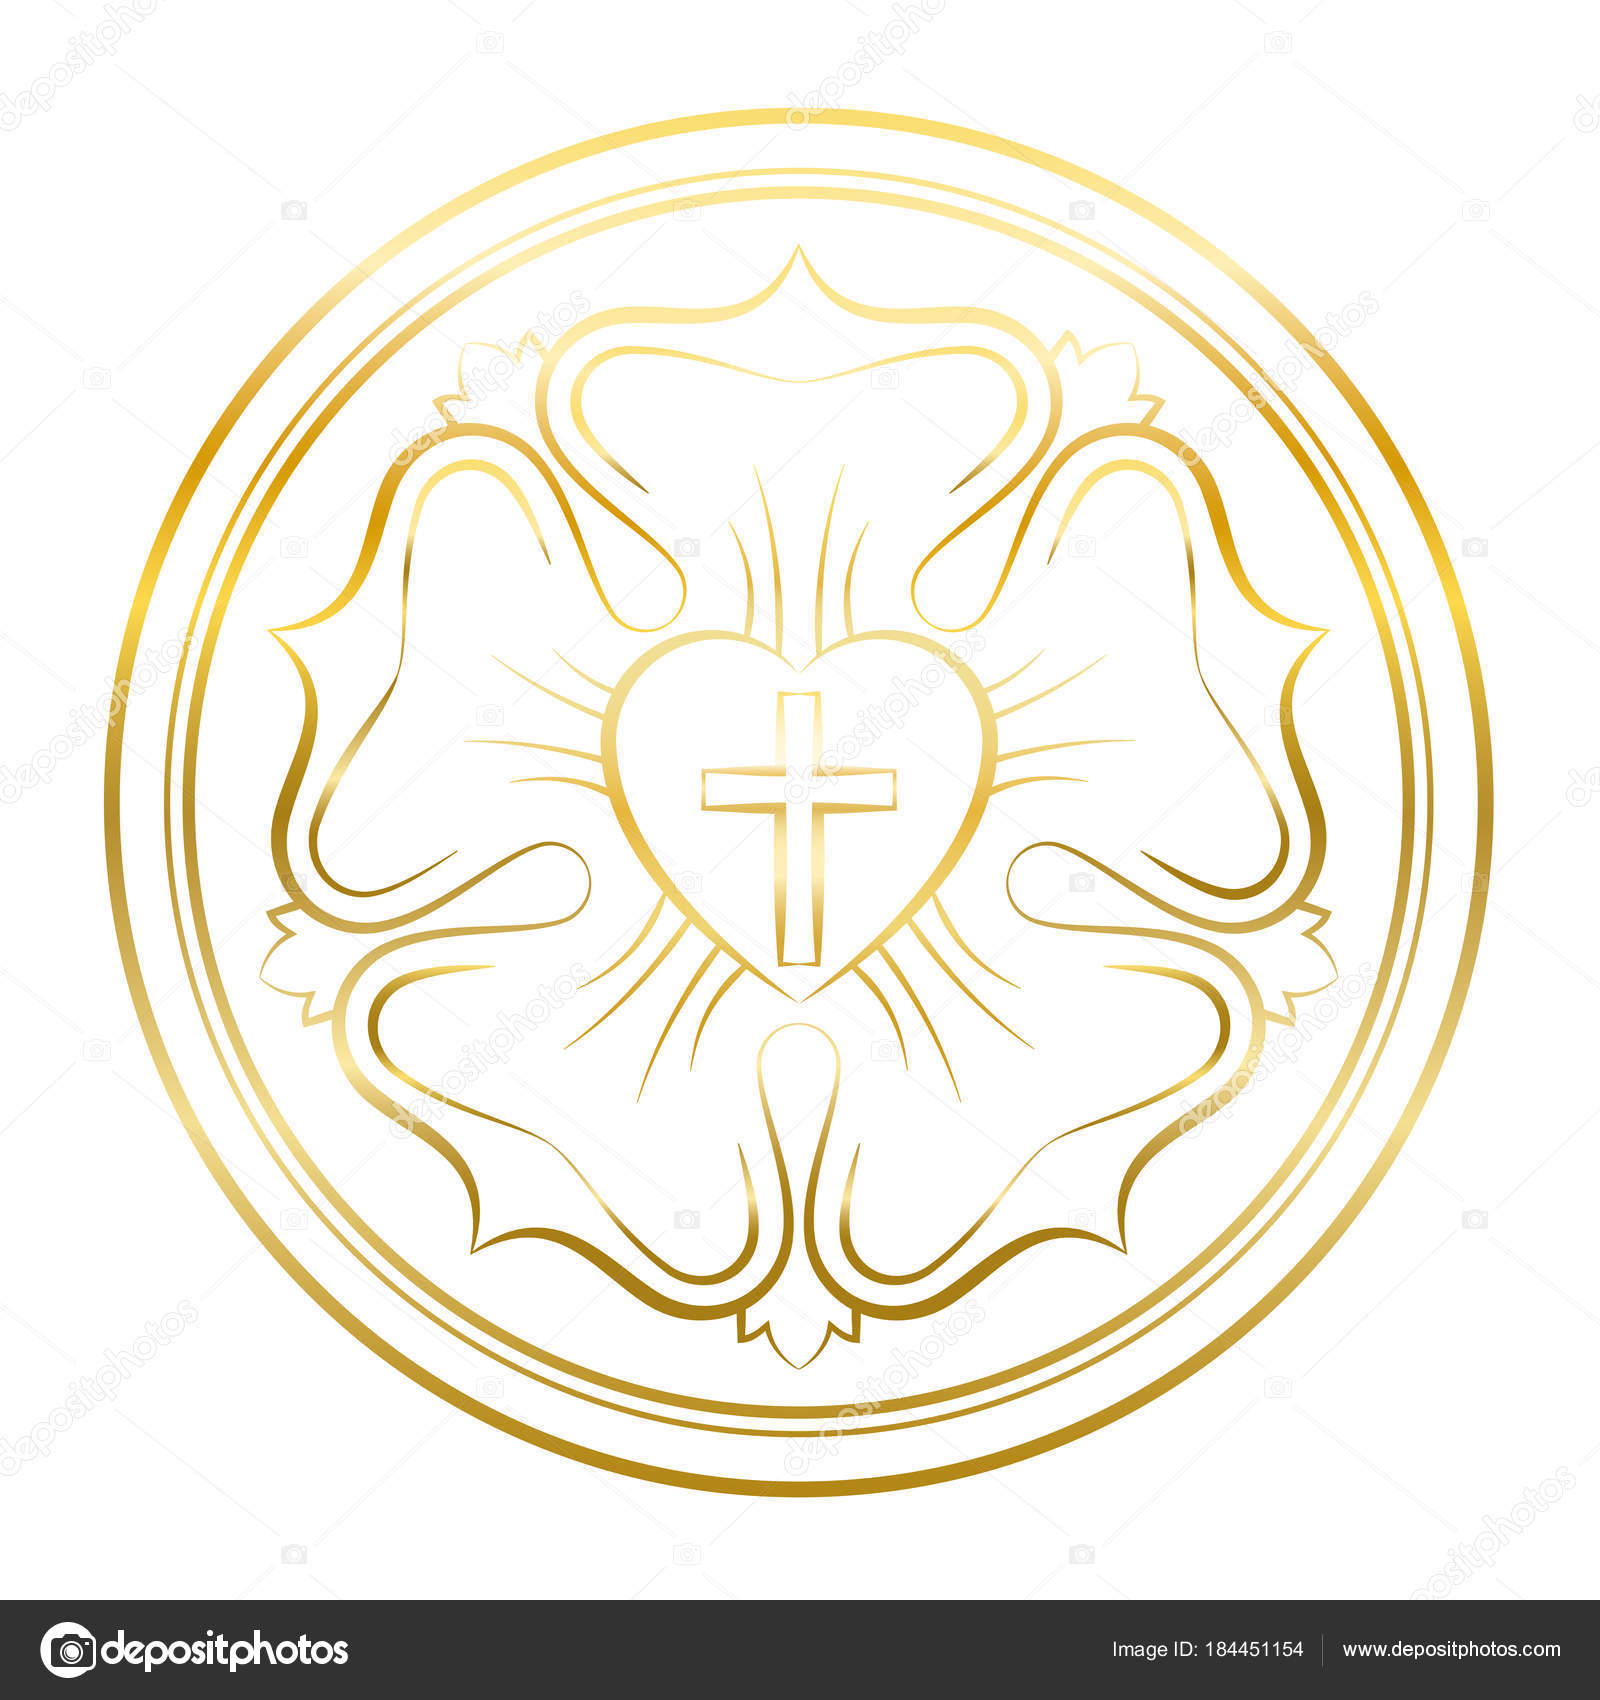 Luther rose symbol golden flower stock vector furian 184451154 luther rose symbol golden illustration on white background martin luther seal symbol of lutheranism consisting of a cross a heart a single rose and a buycottarizona Choice Image